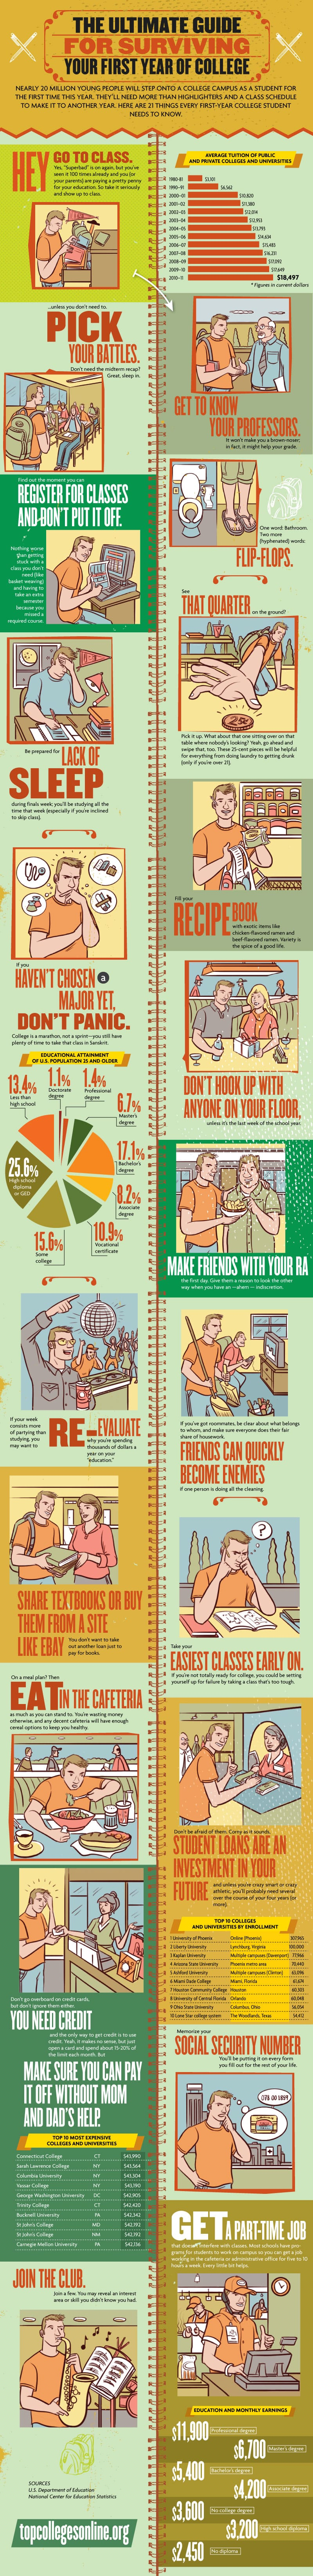 for first year college challenges infographic tips for first year college challenges infographic